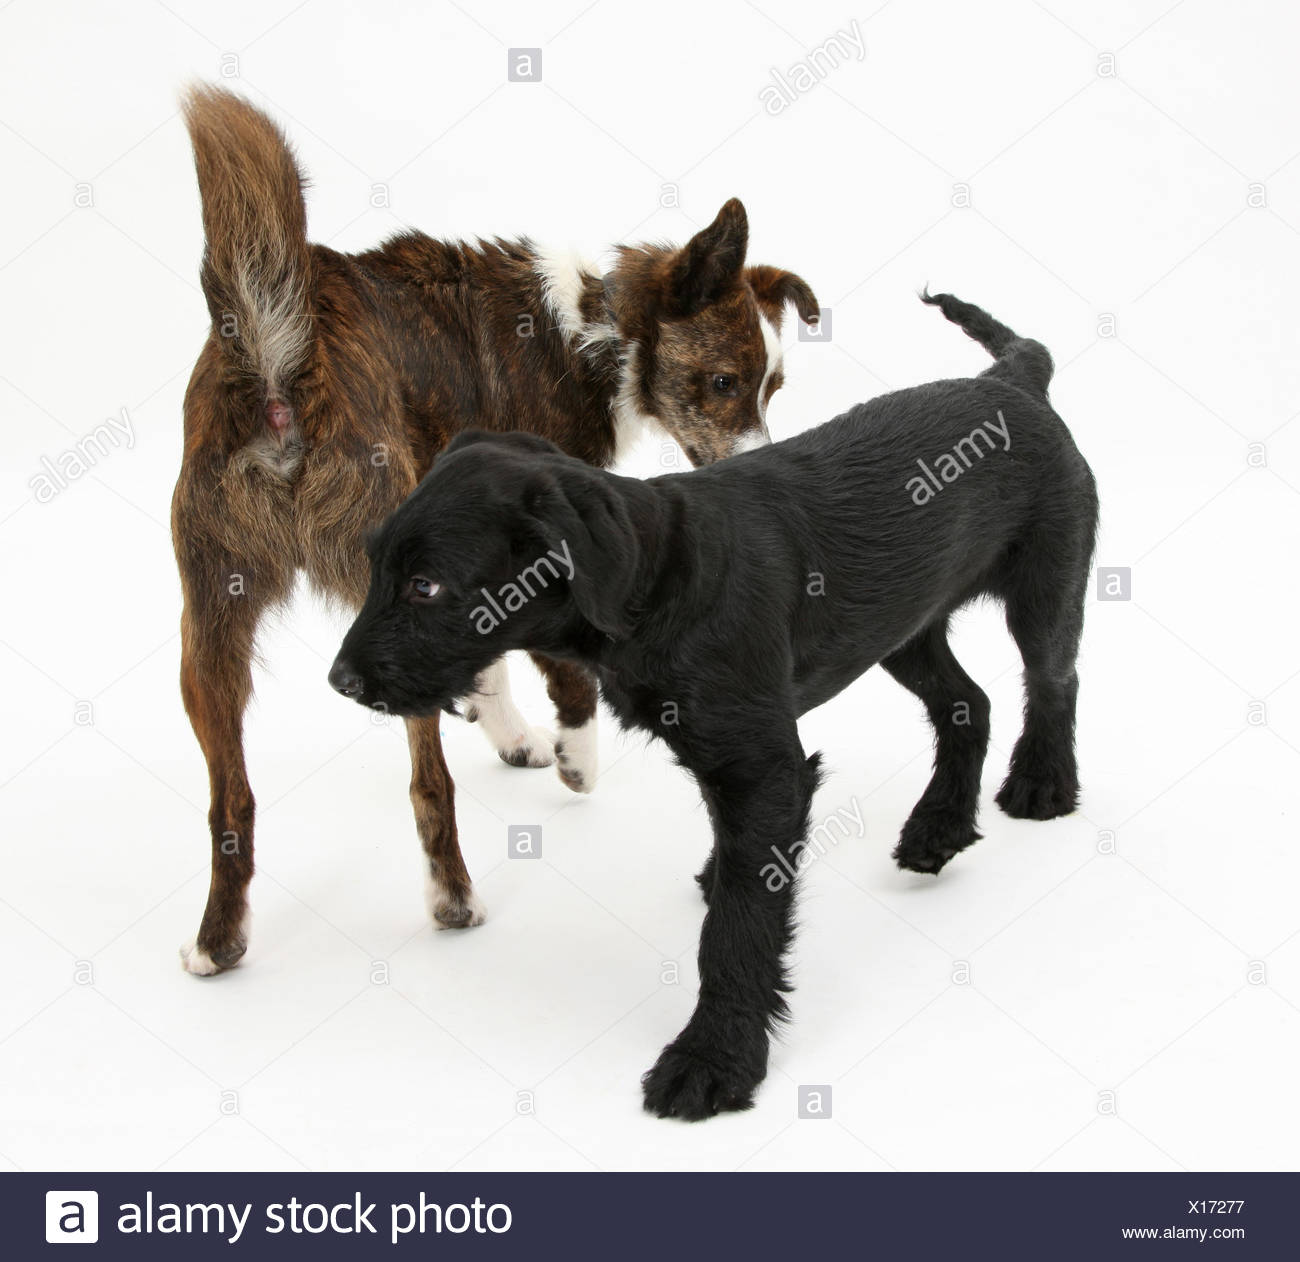 Collie cross, Brec, with hackles raised, showing assertiveness over black puppy. - Stock Image